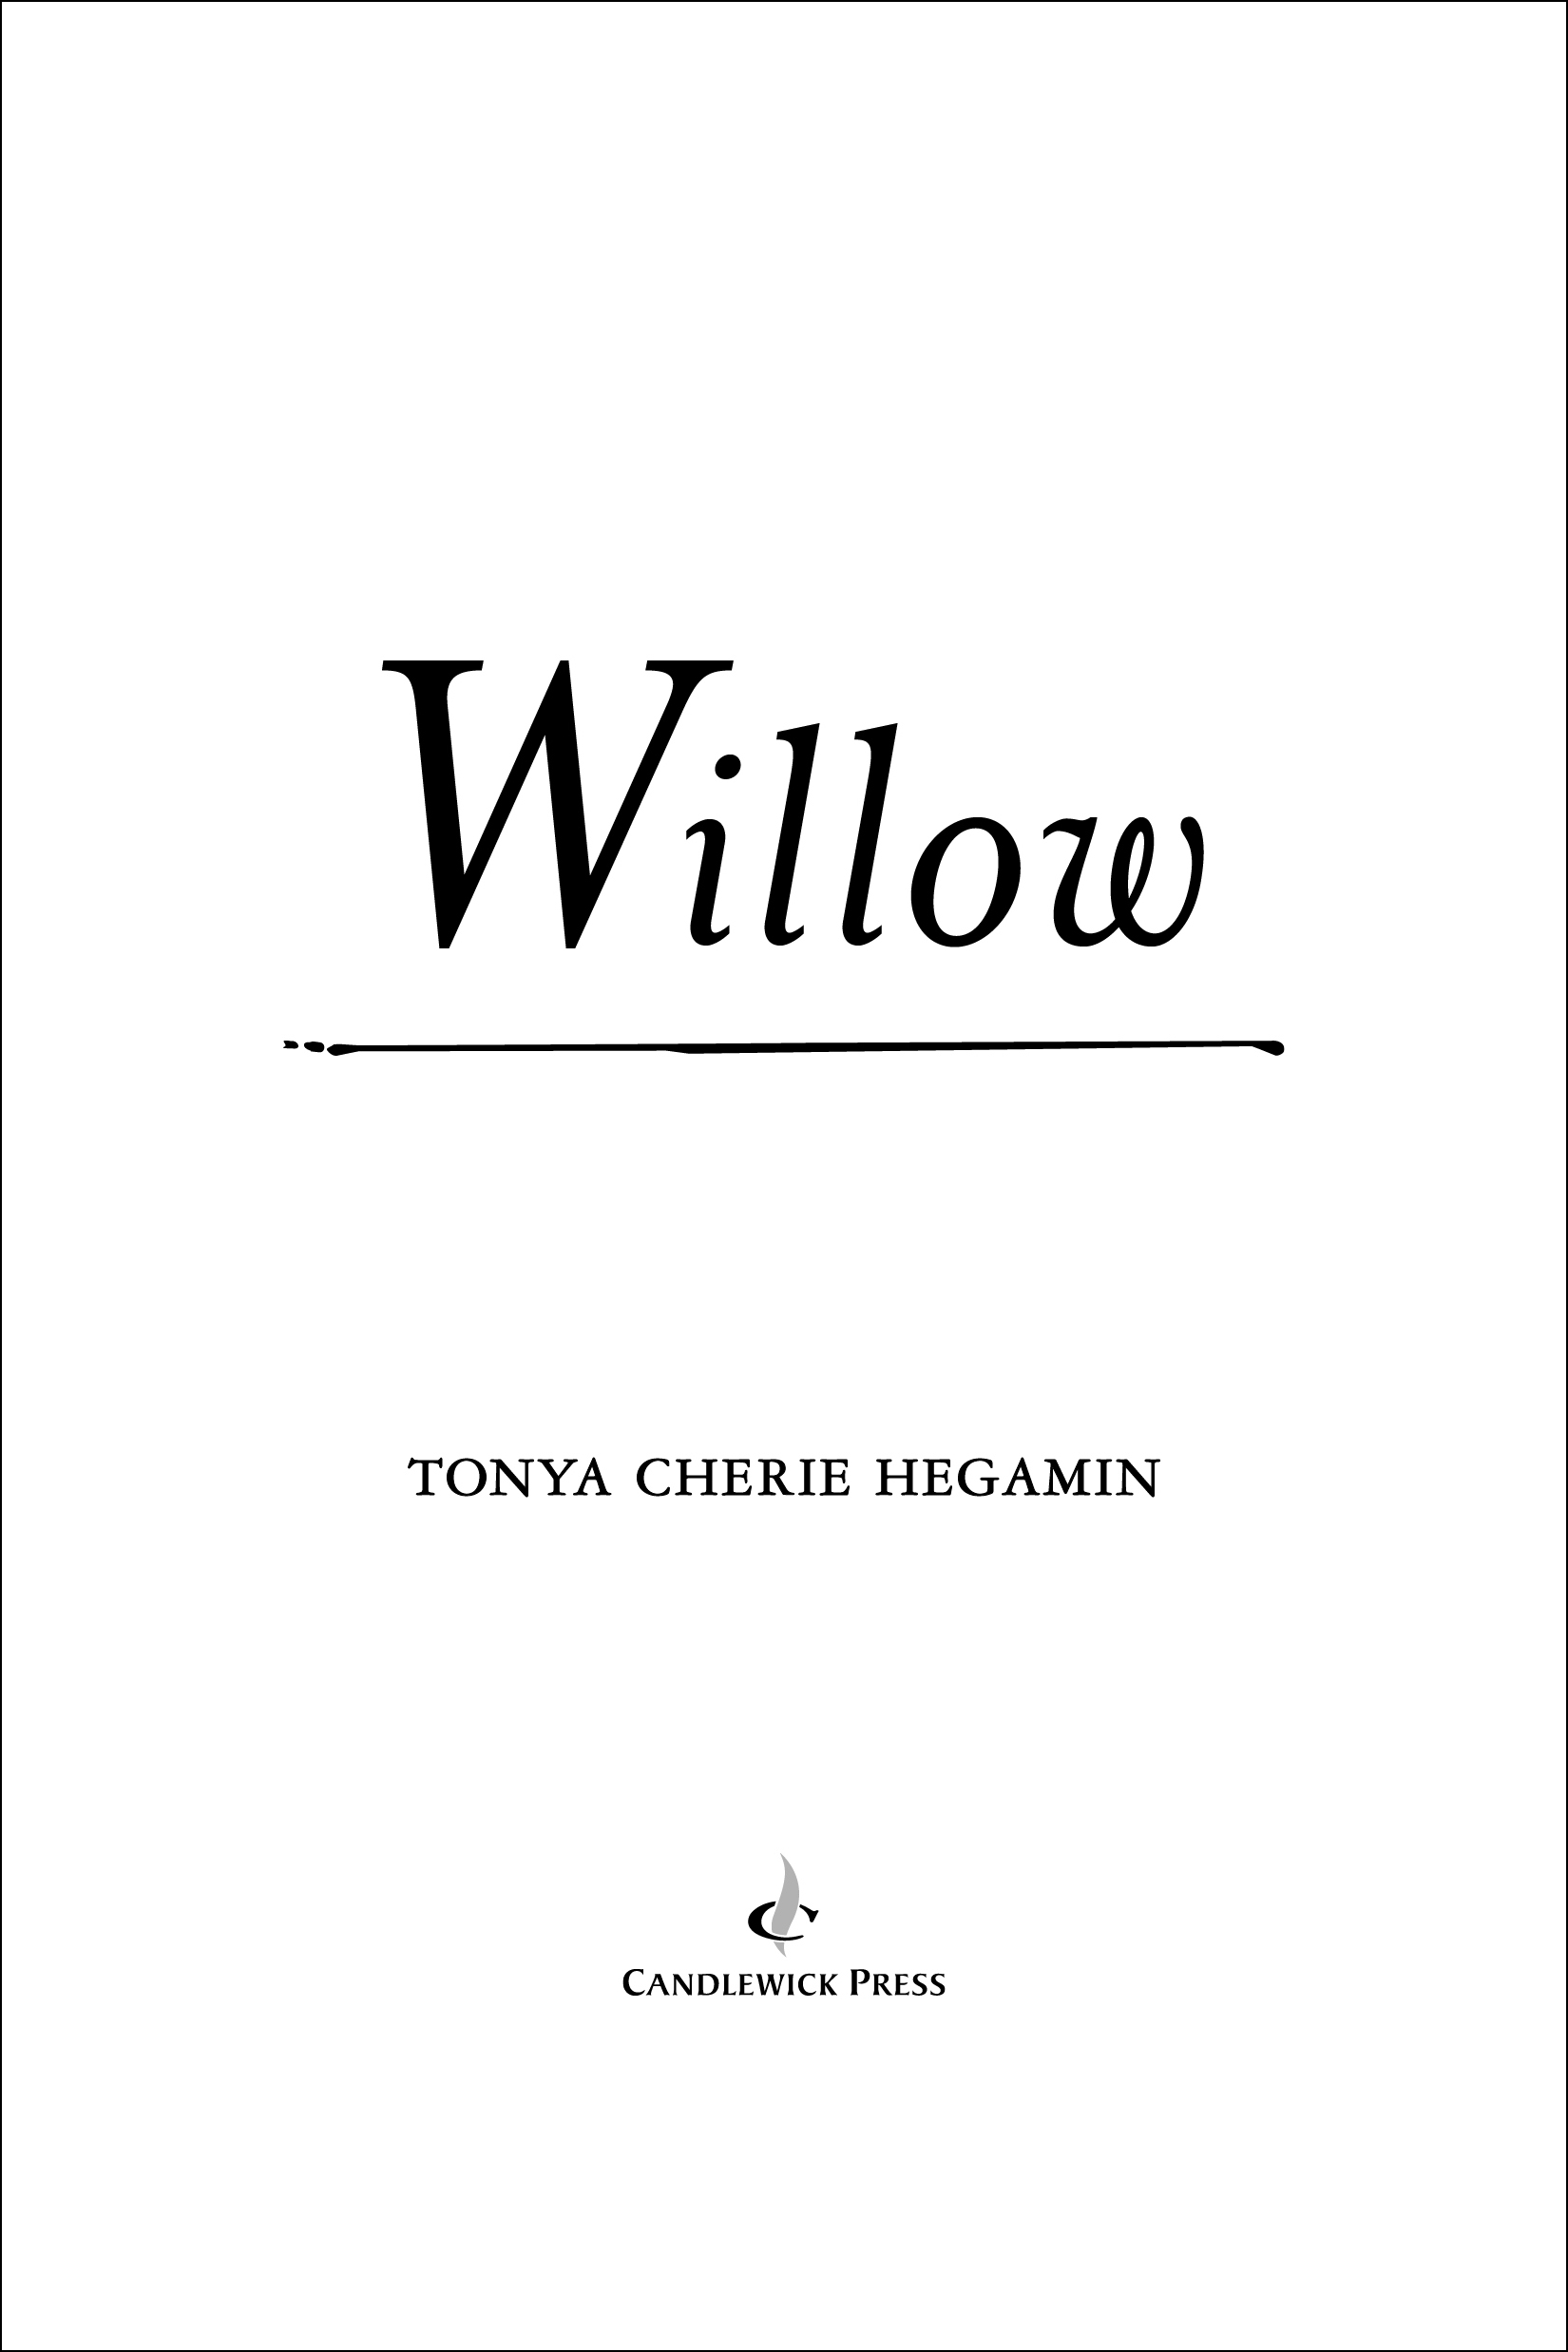 Title page for WILLOW